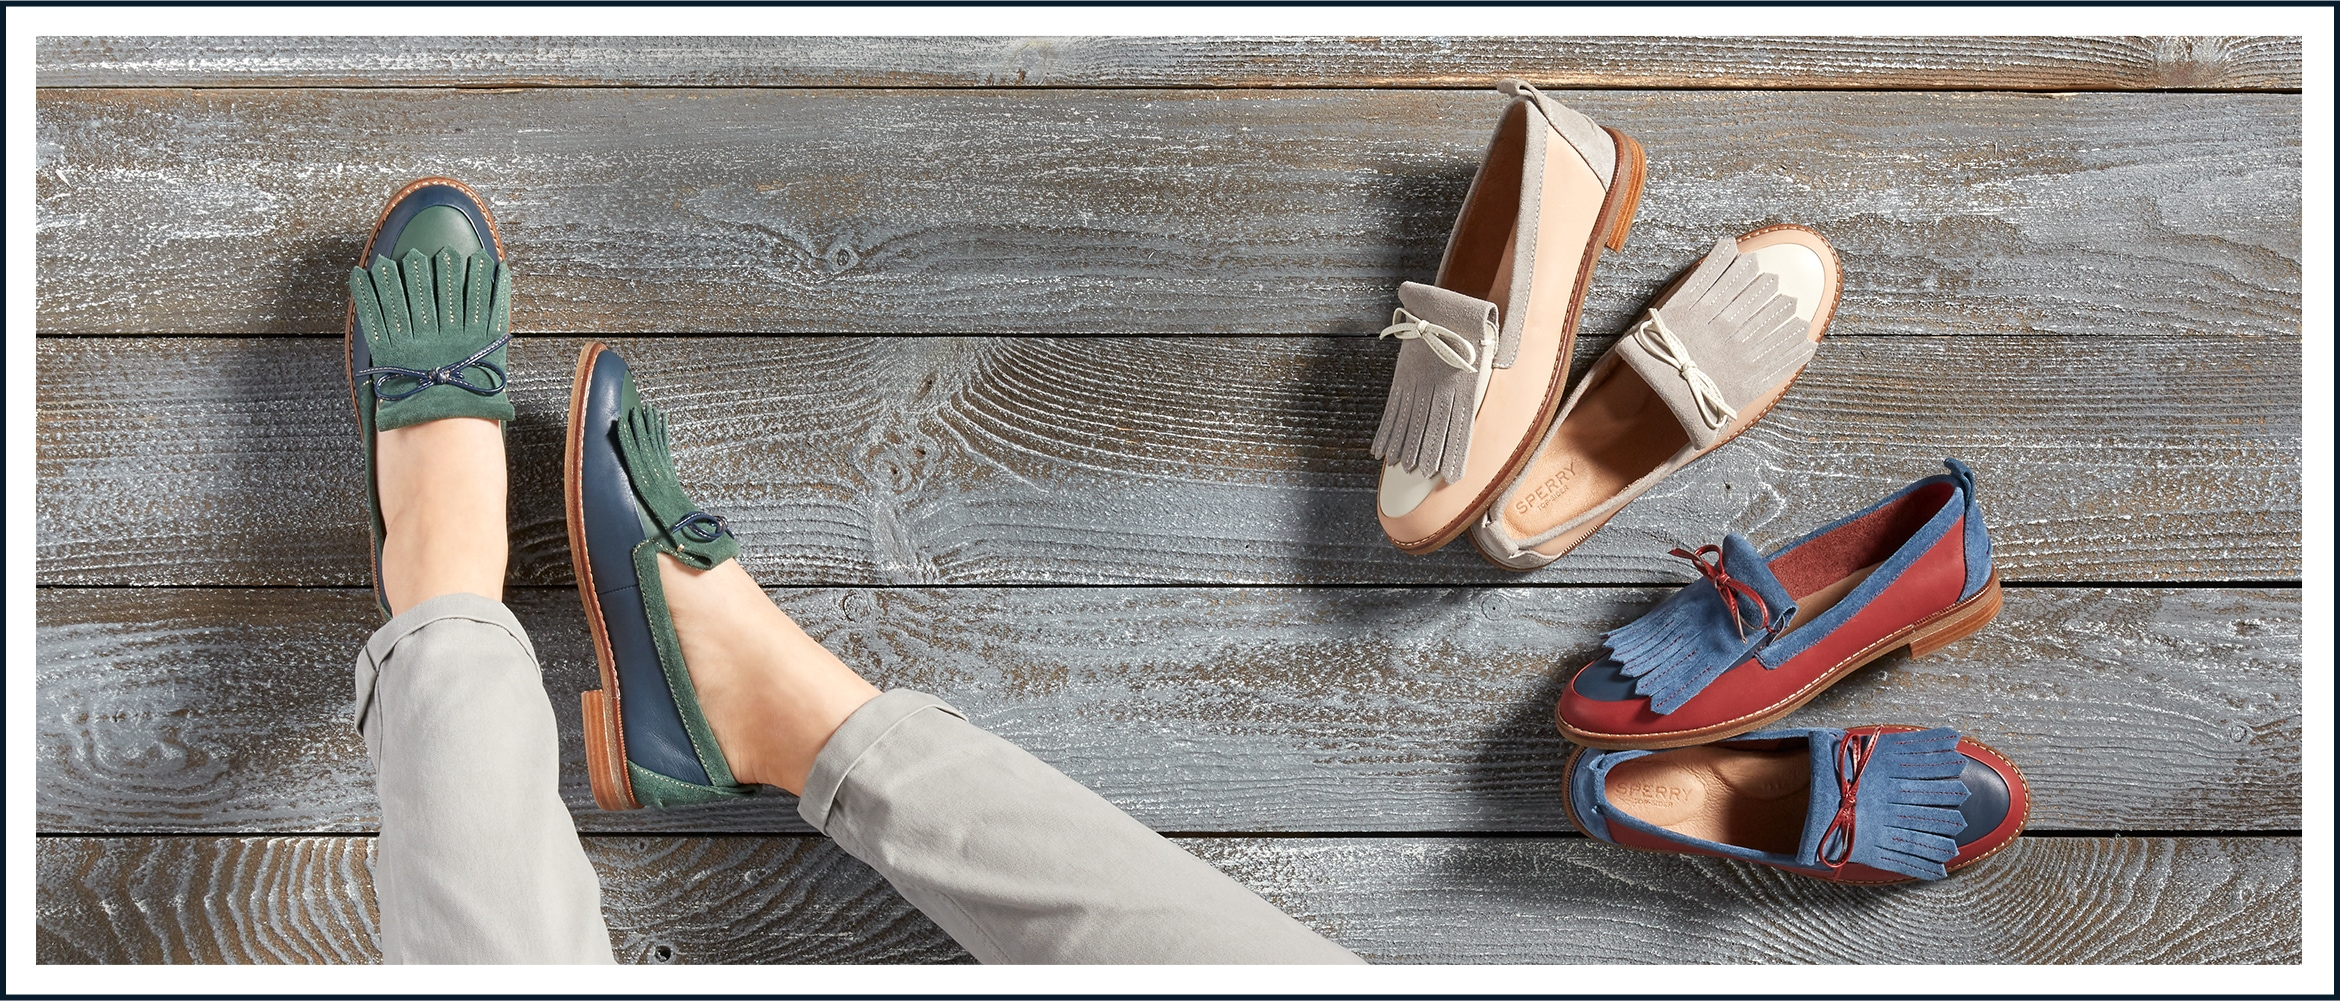 A closeup of one women's feet wearing Seaport Penny Kiltie shoes. Two other pairs are next to her on the deck.